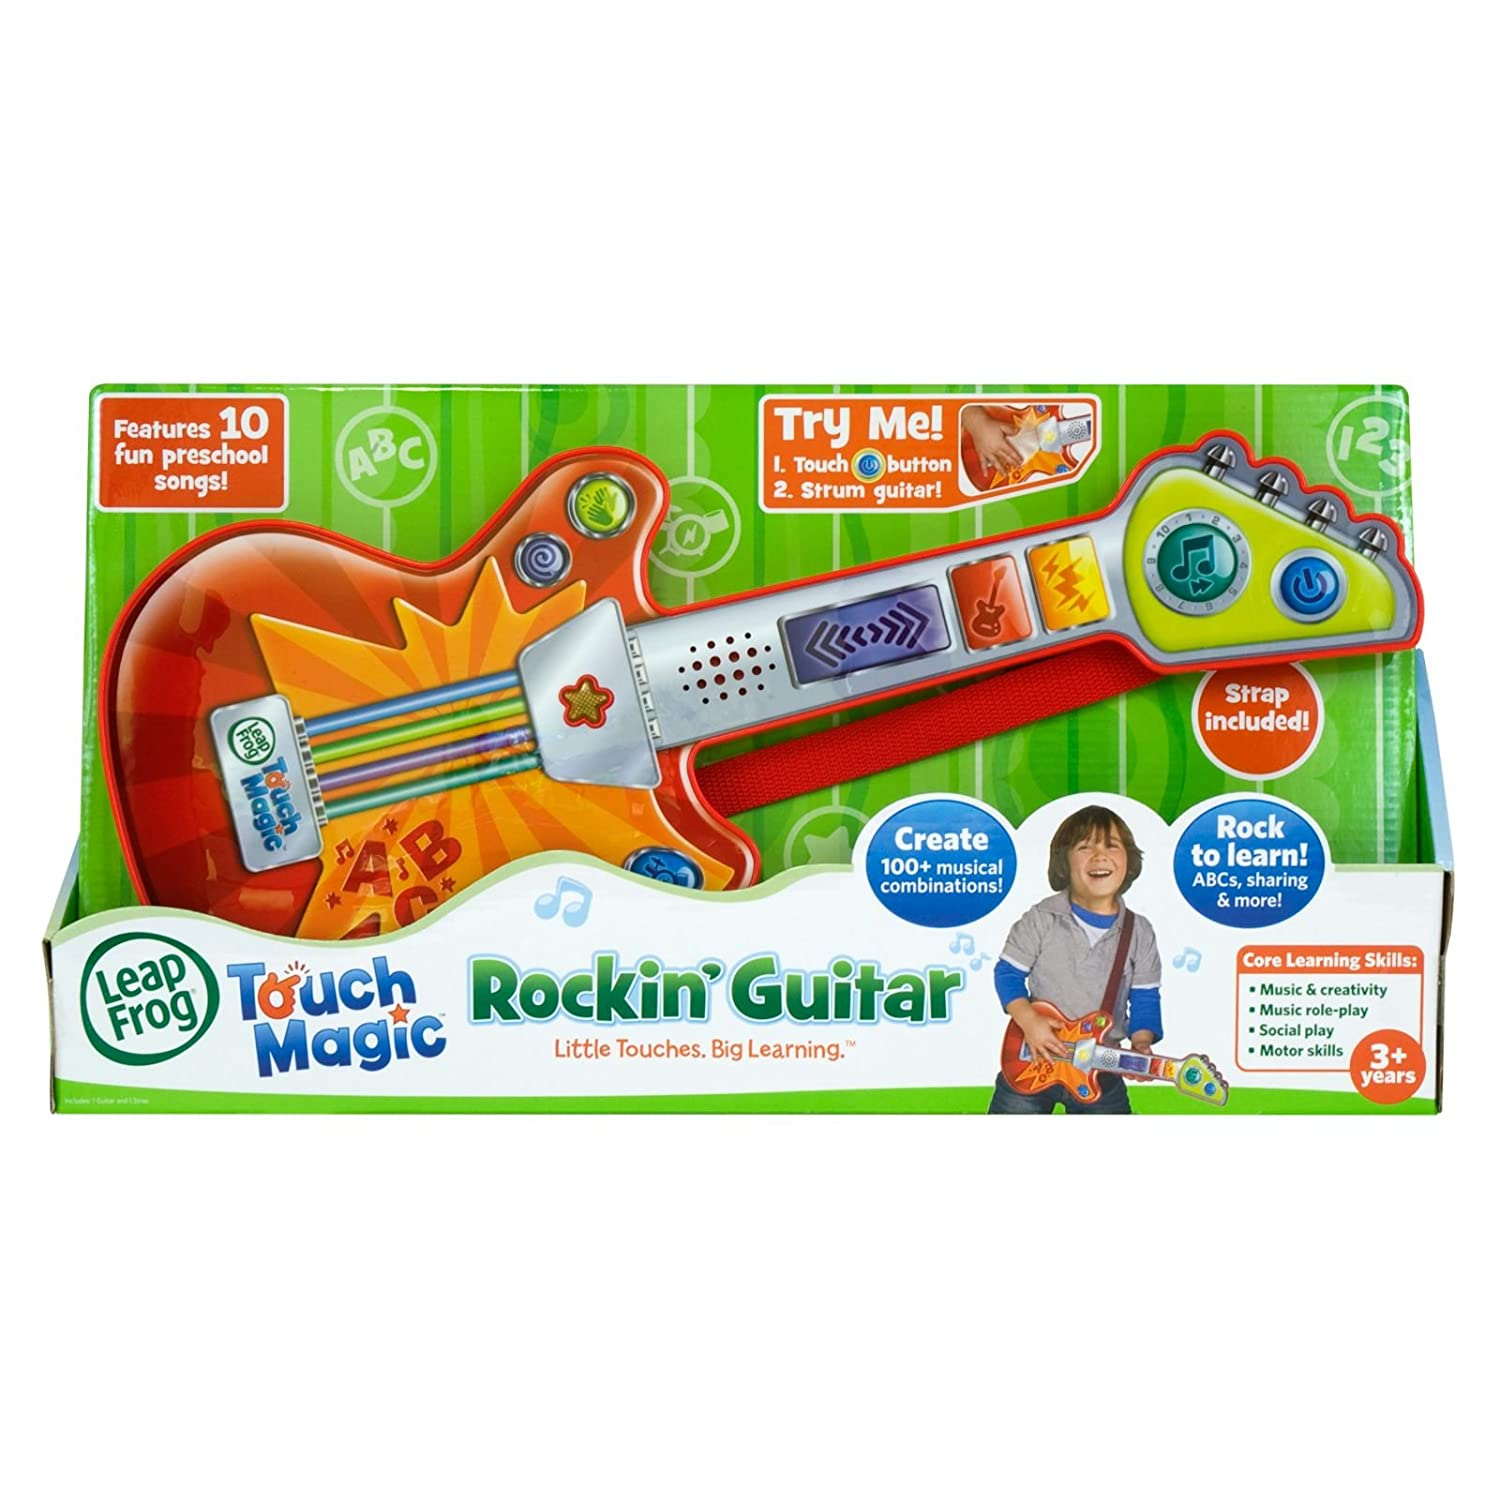 Amazon.es: LeapFrog Touch Magic Rockin Guitar - juguetes musicales (Alcalino, Naranja, Rojo, Color blanco)